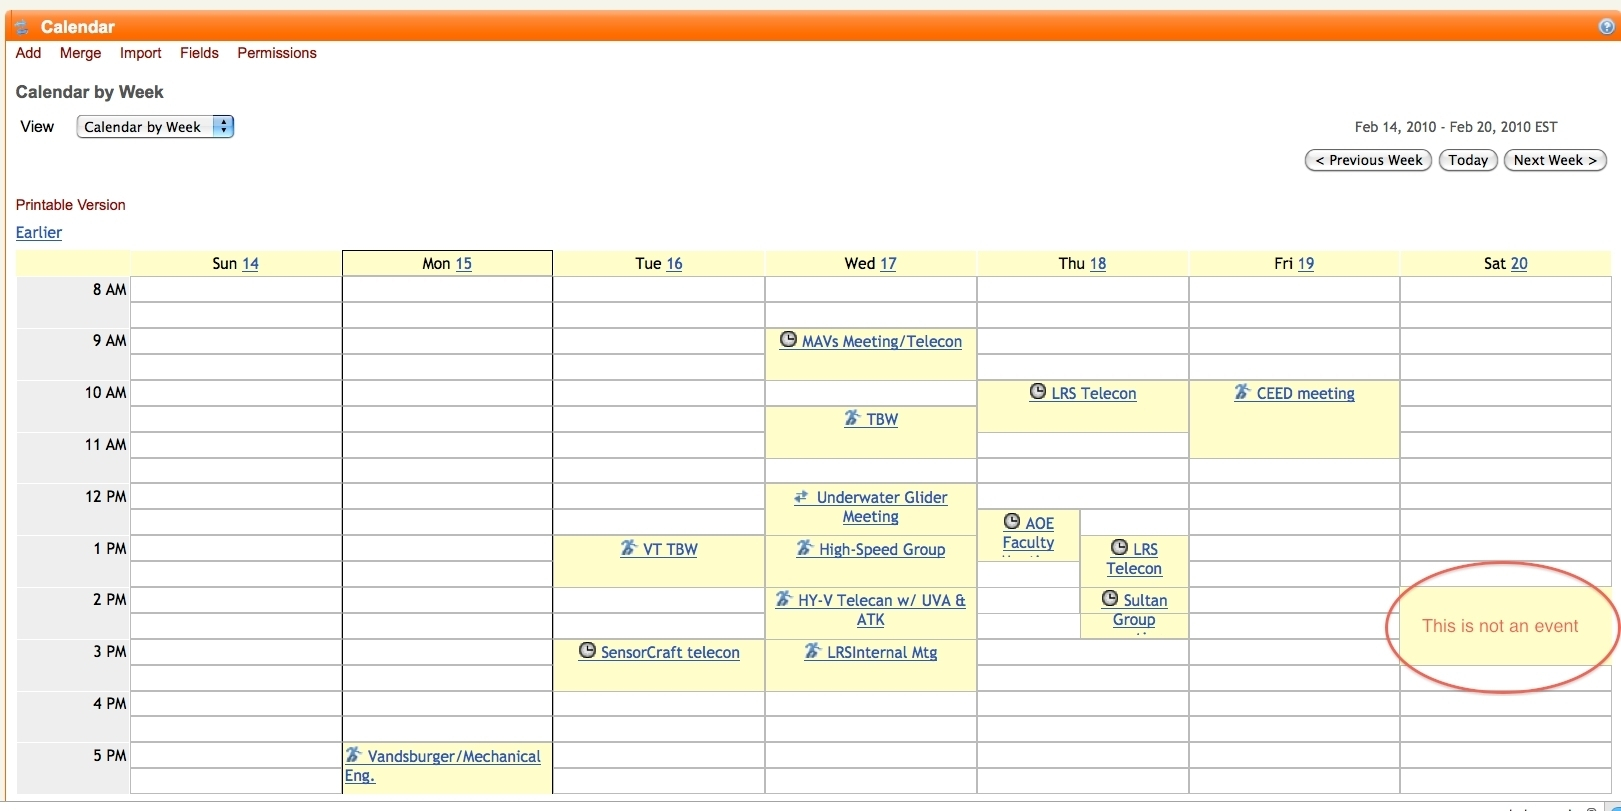 Free Printable Calendar With Time Slots | Ten Free with regard to Weekly Planner With Time Slots Template